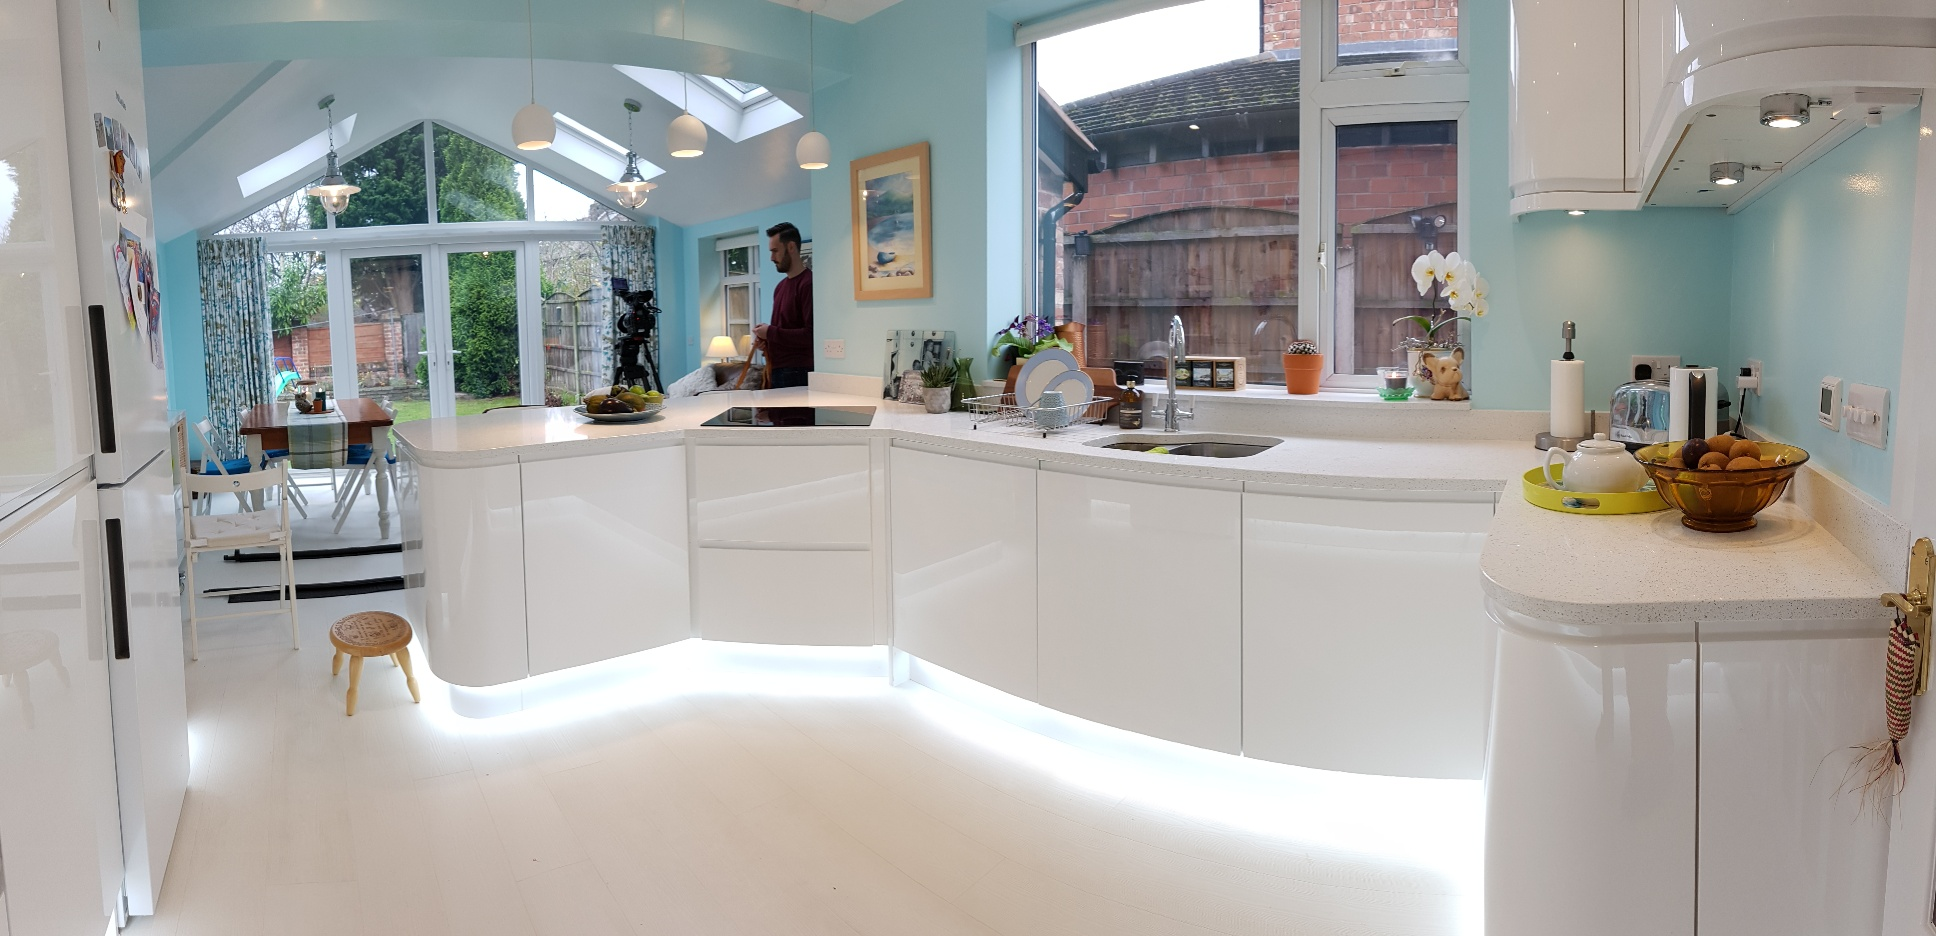 MKM Macclesfield Kitchen Design On .